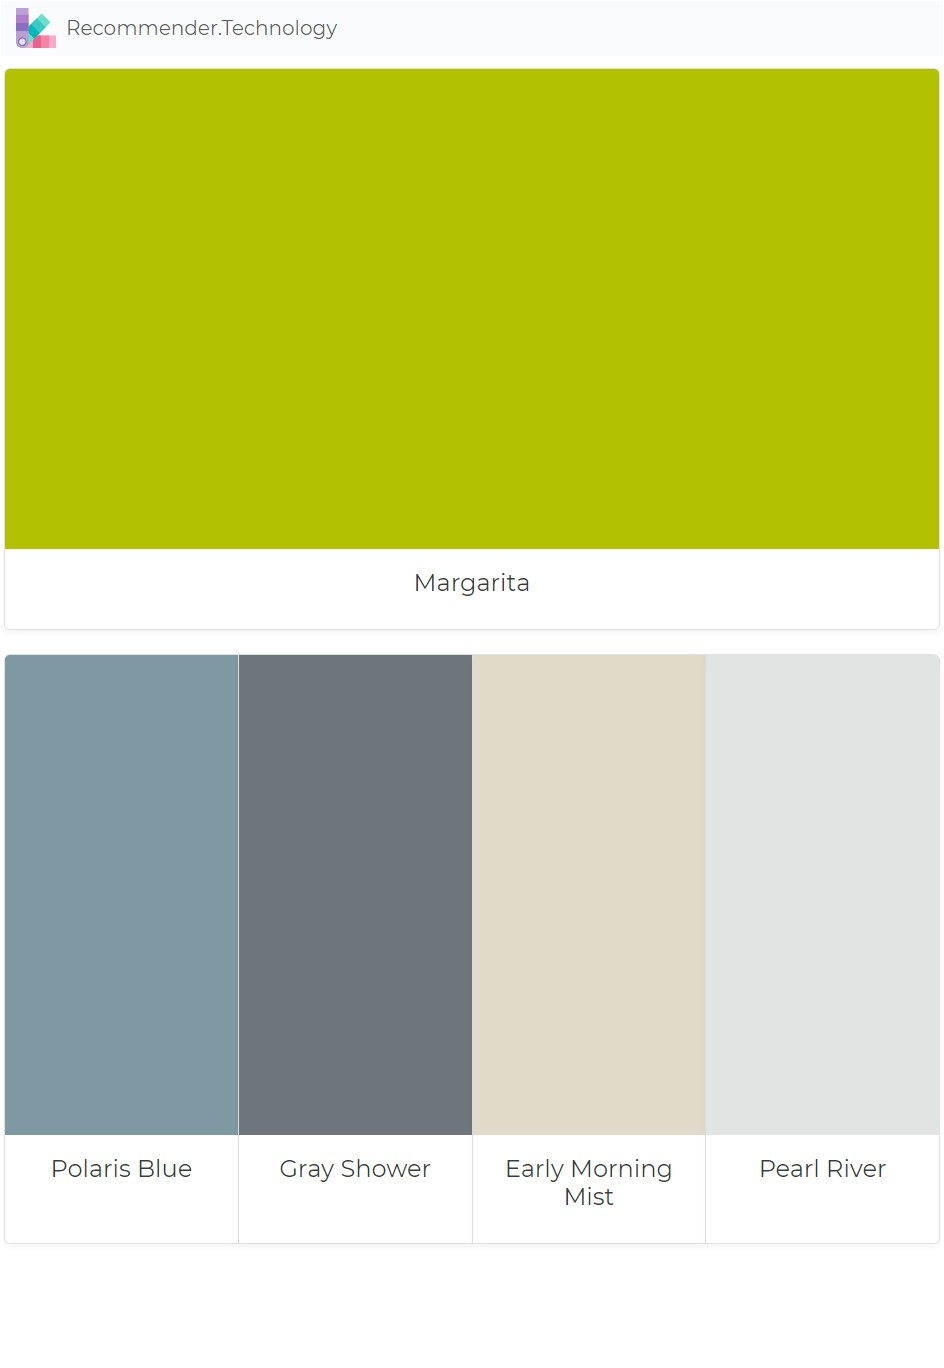 margarita polaris blue gray shower early morning mist pearl river paint color